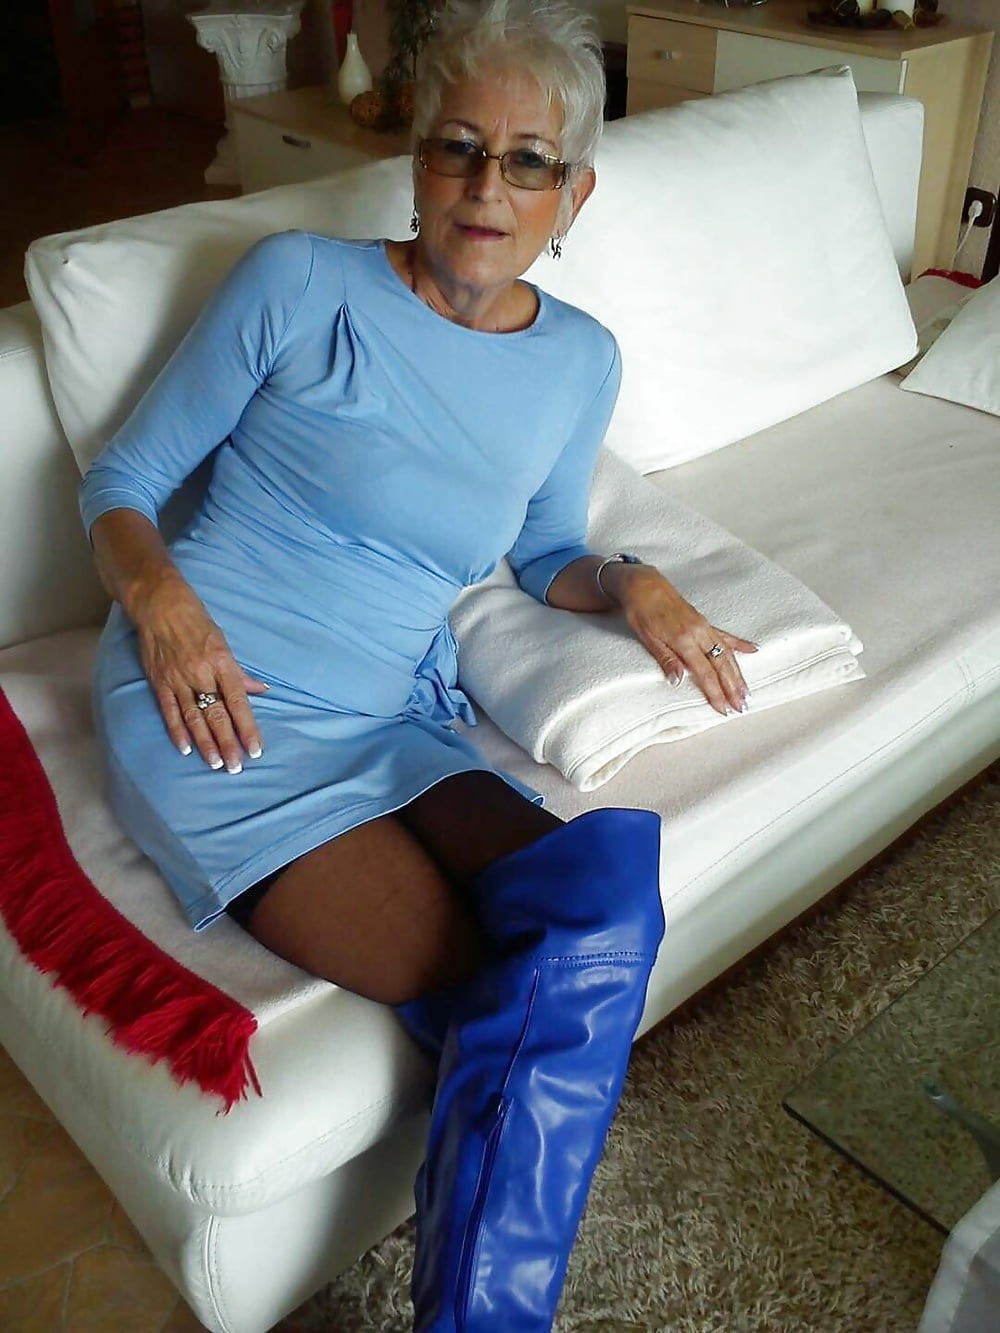 Clear plastic boots and nylons